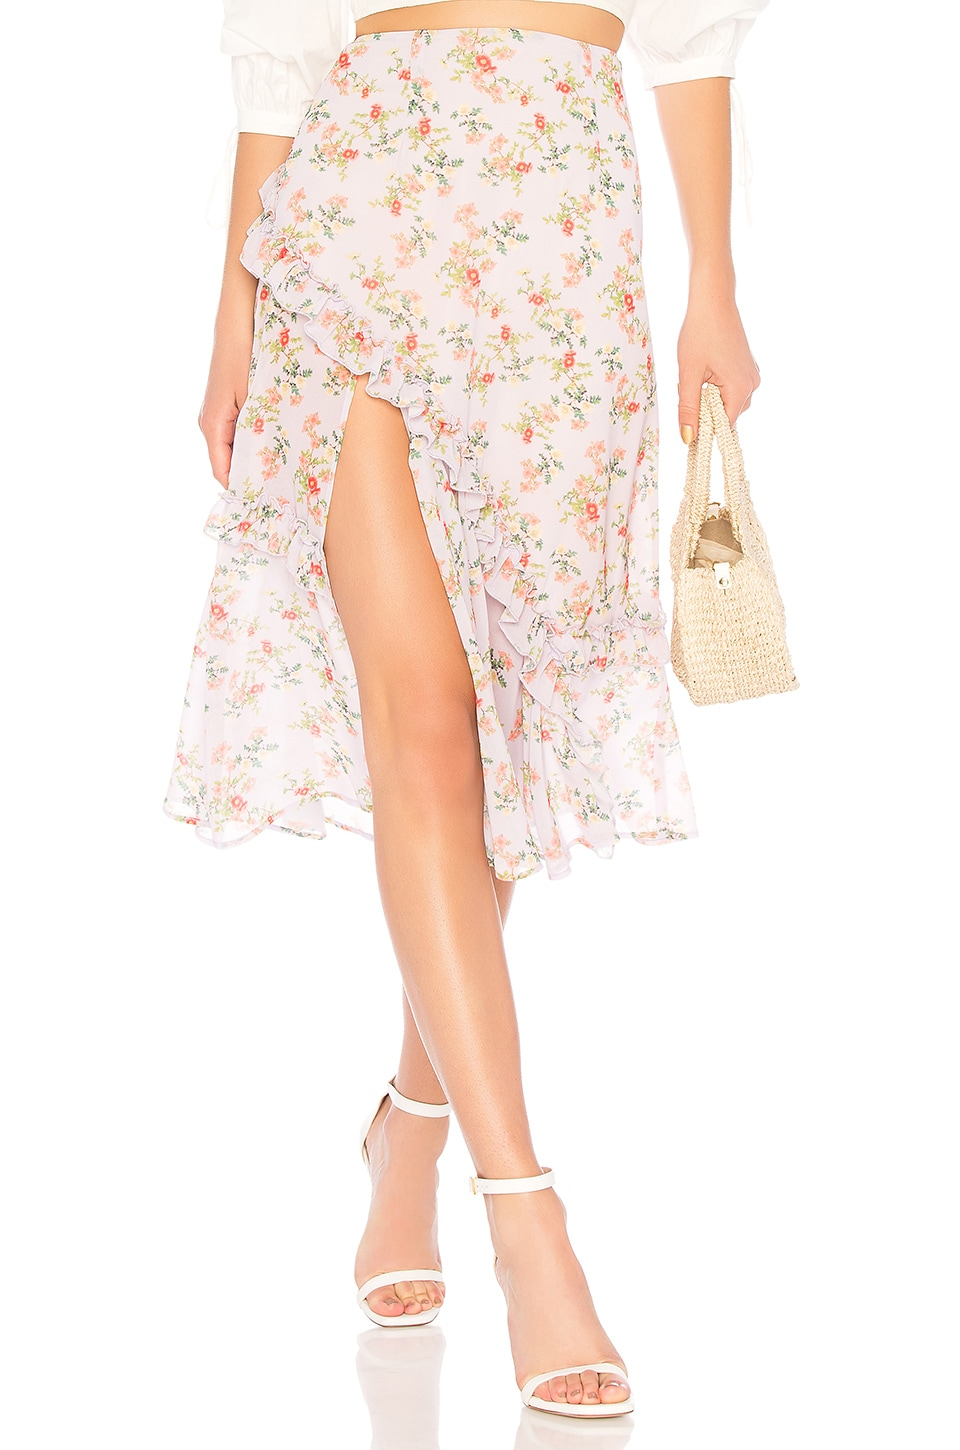 Lovers + Friends Tay Skirt in Lilac Floral